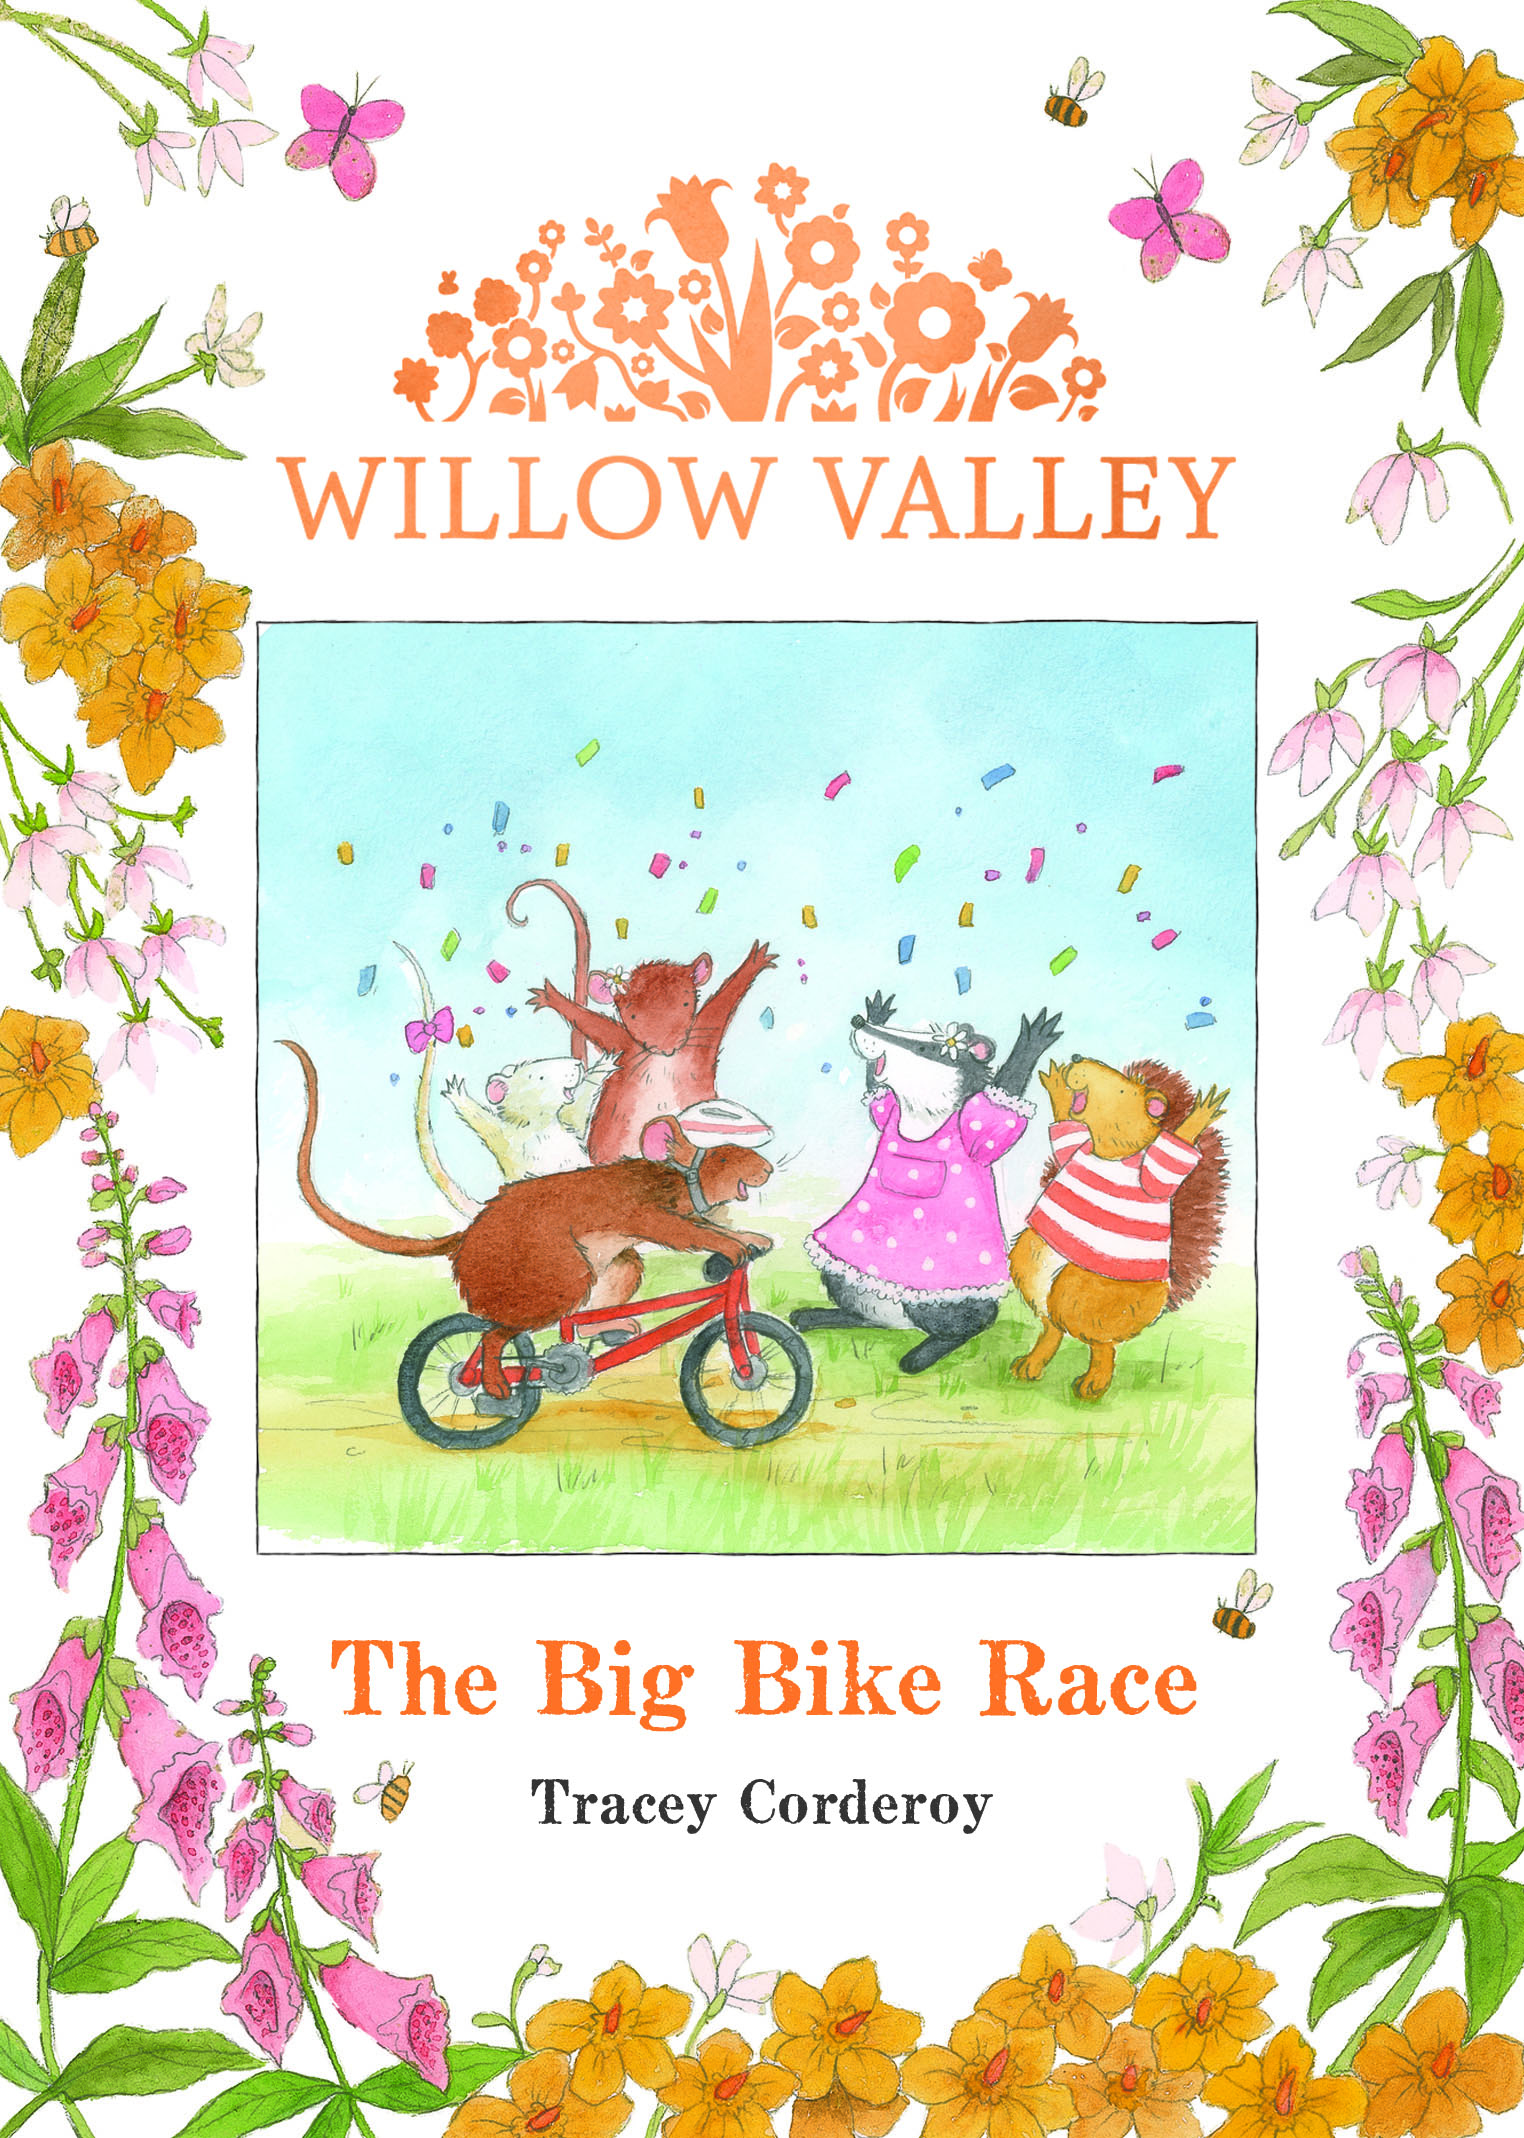 Willow Valley - The Big Bike Race